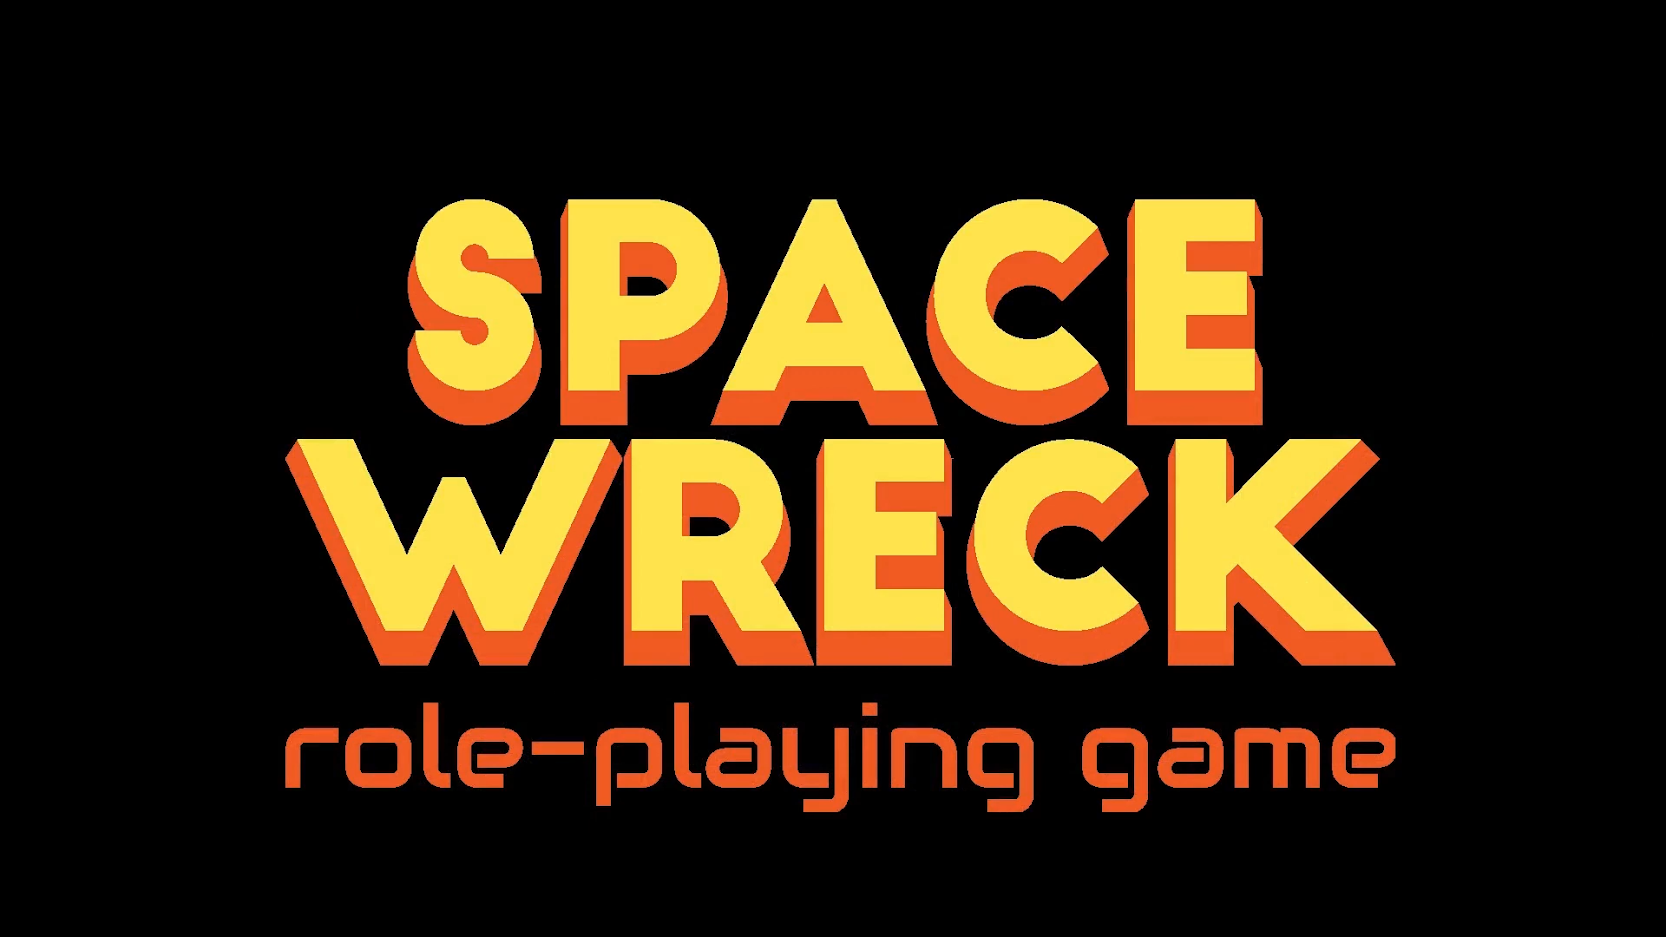 Space Wreck takes us back to REAL RPGs with its retro design and gameplay